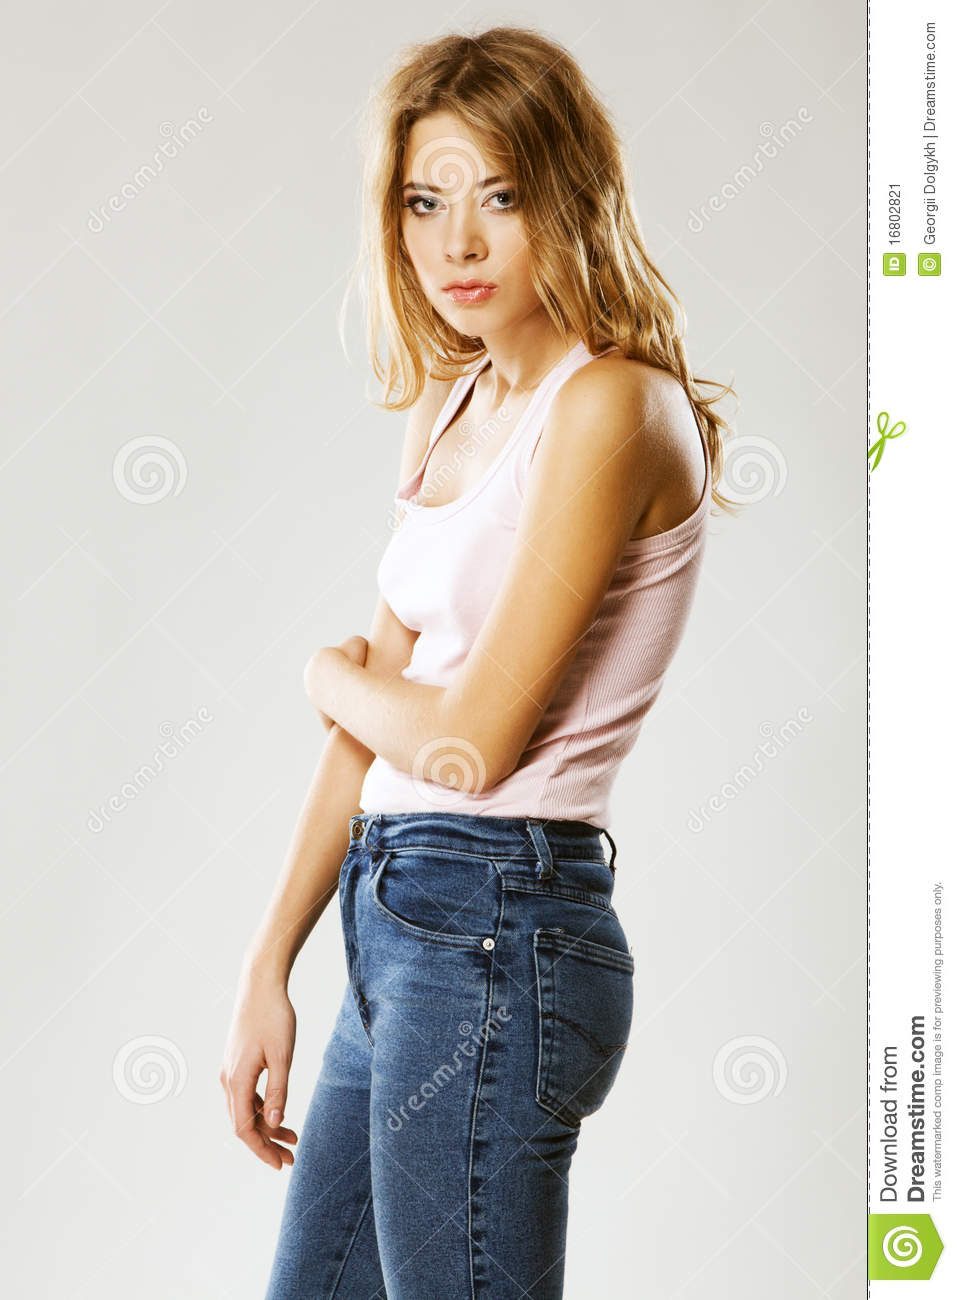 beautiful fashion model in casual clothing stock image